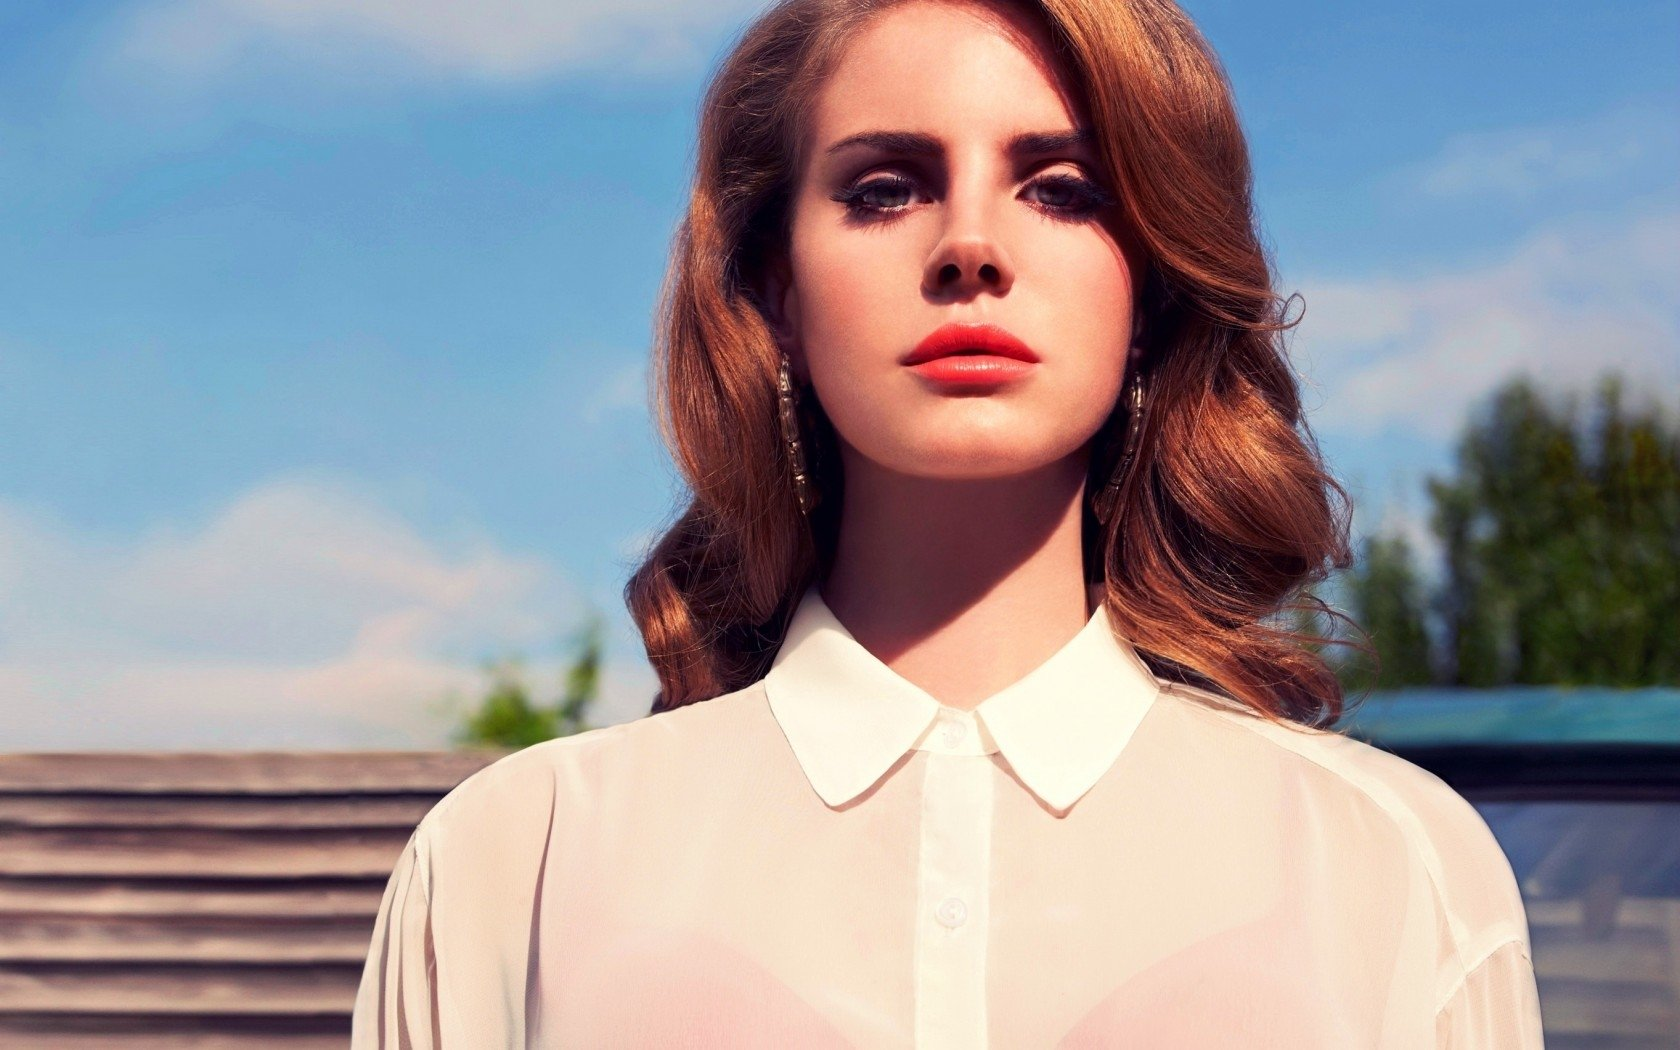 124 Lana Del Rey HD Wallpapers Background Images 1680x1050